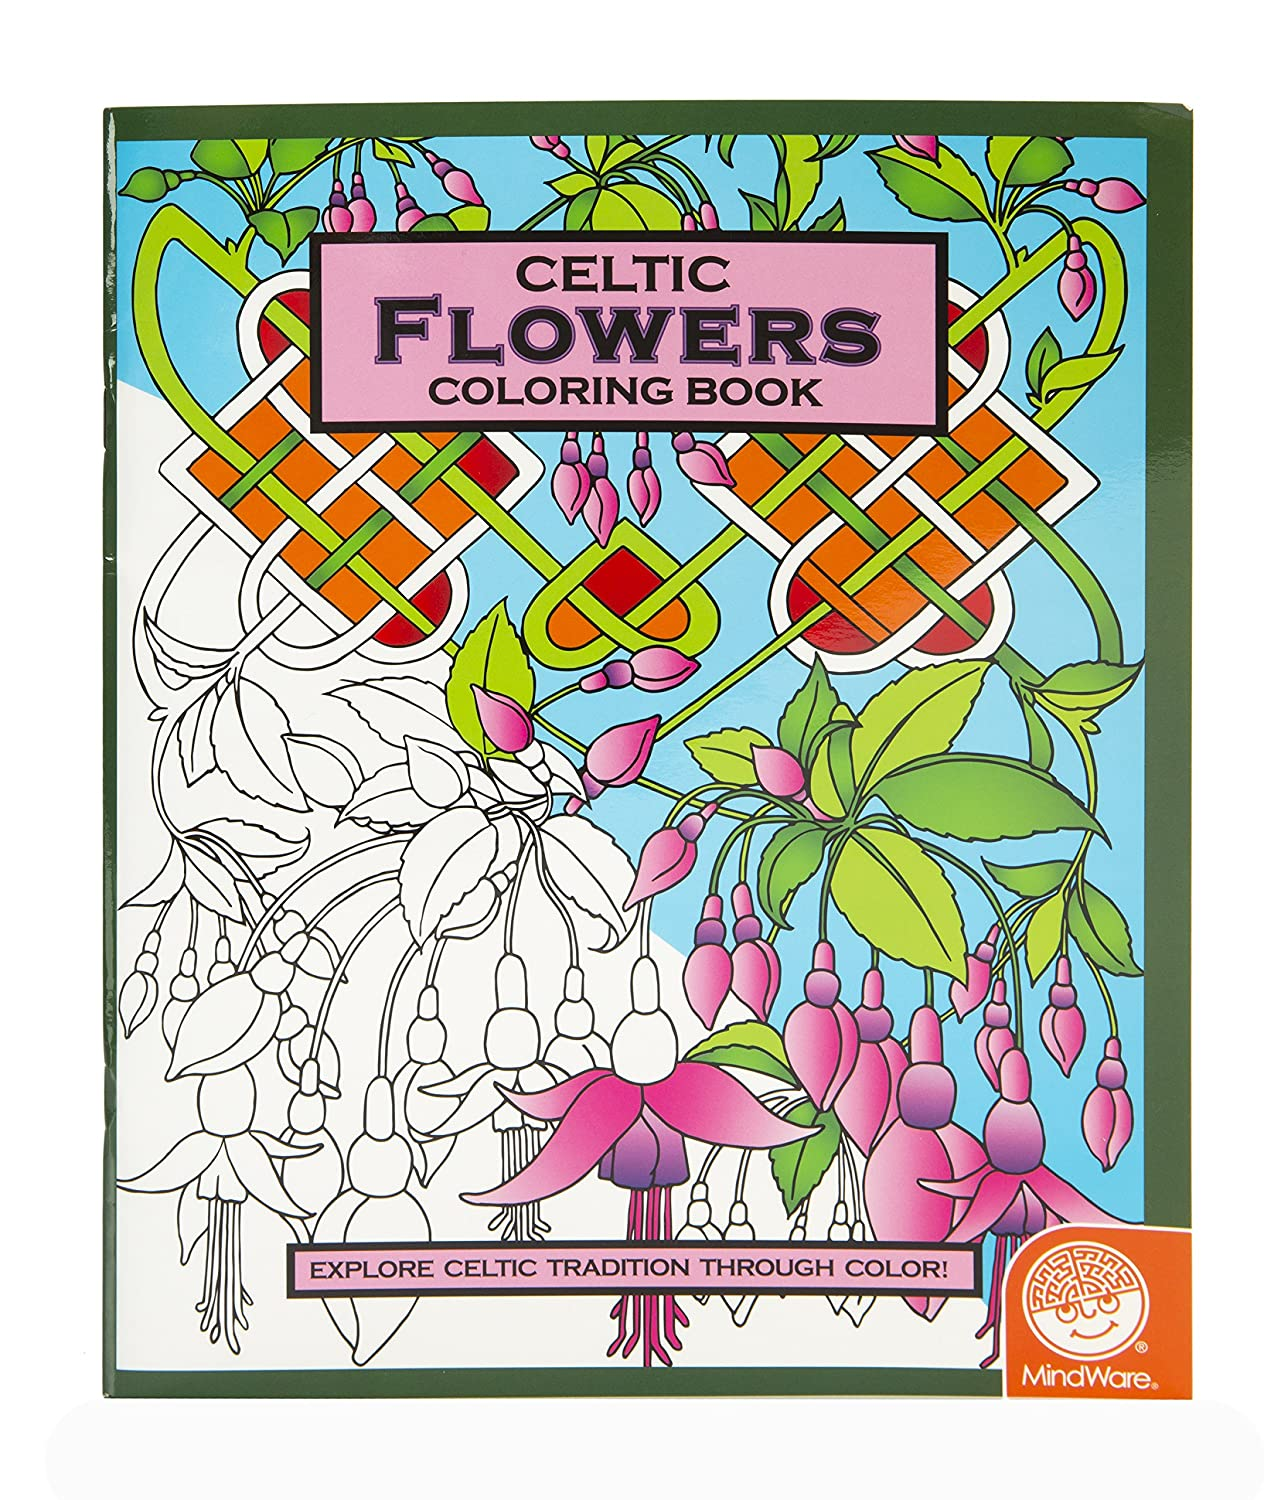 amazoncom mindware celtic flowers coloring book 24 total designs teaches creativity and fosters imagination toys games - Mosaic Coloring Book